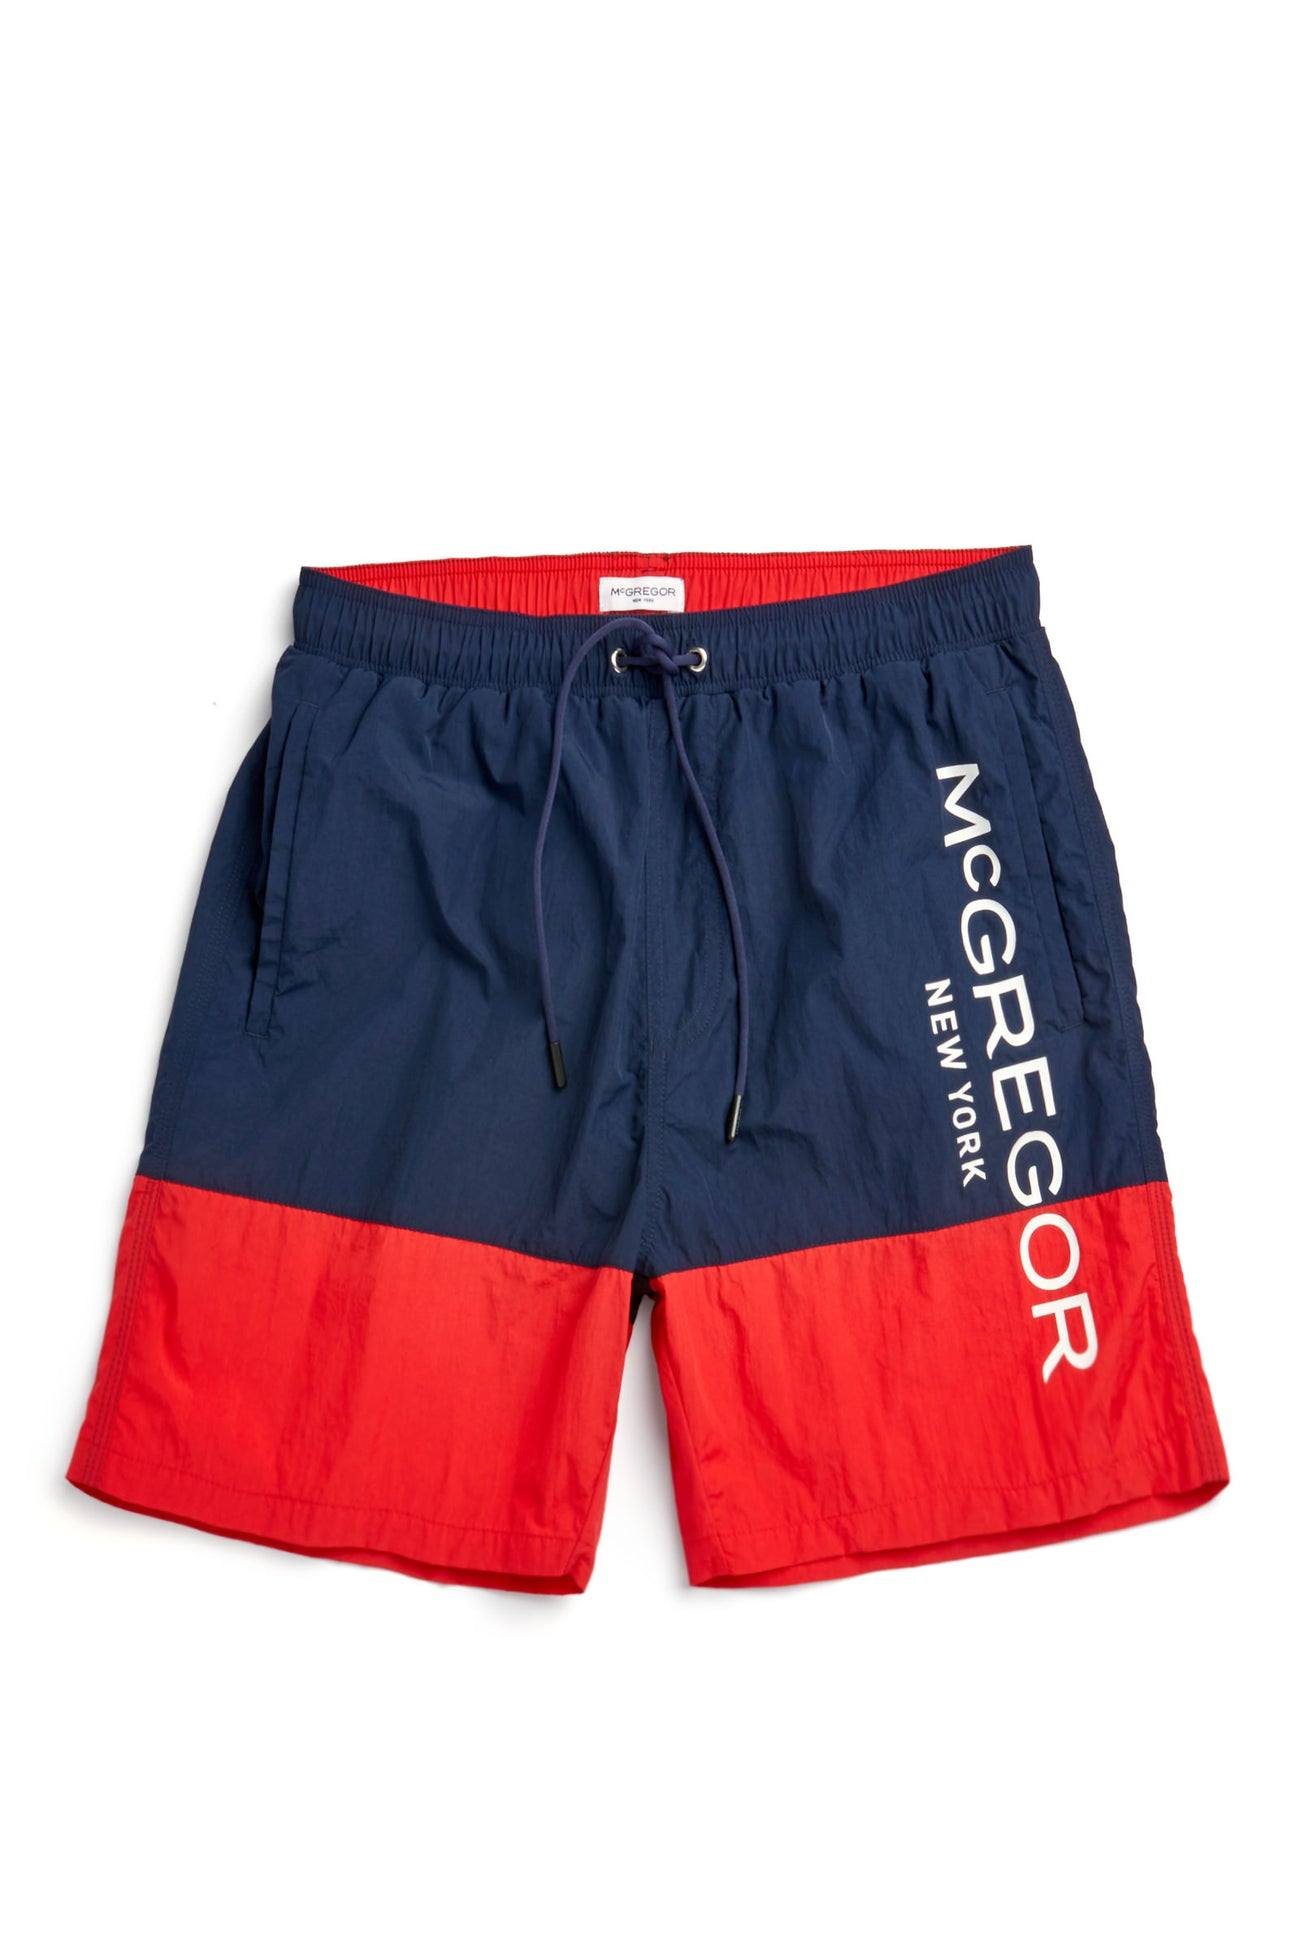 McG Regular fit colorblock swim short